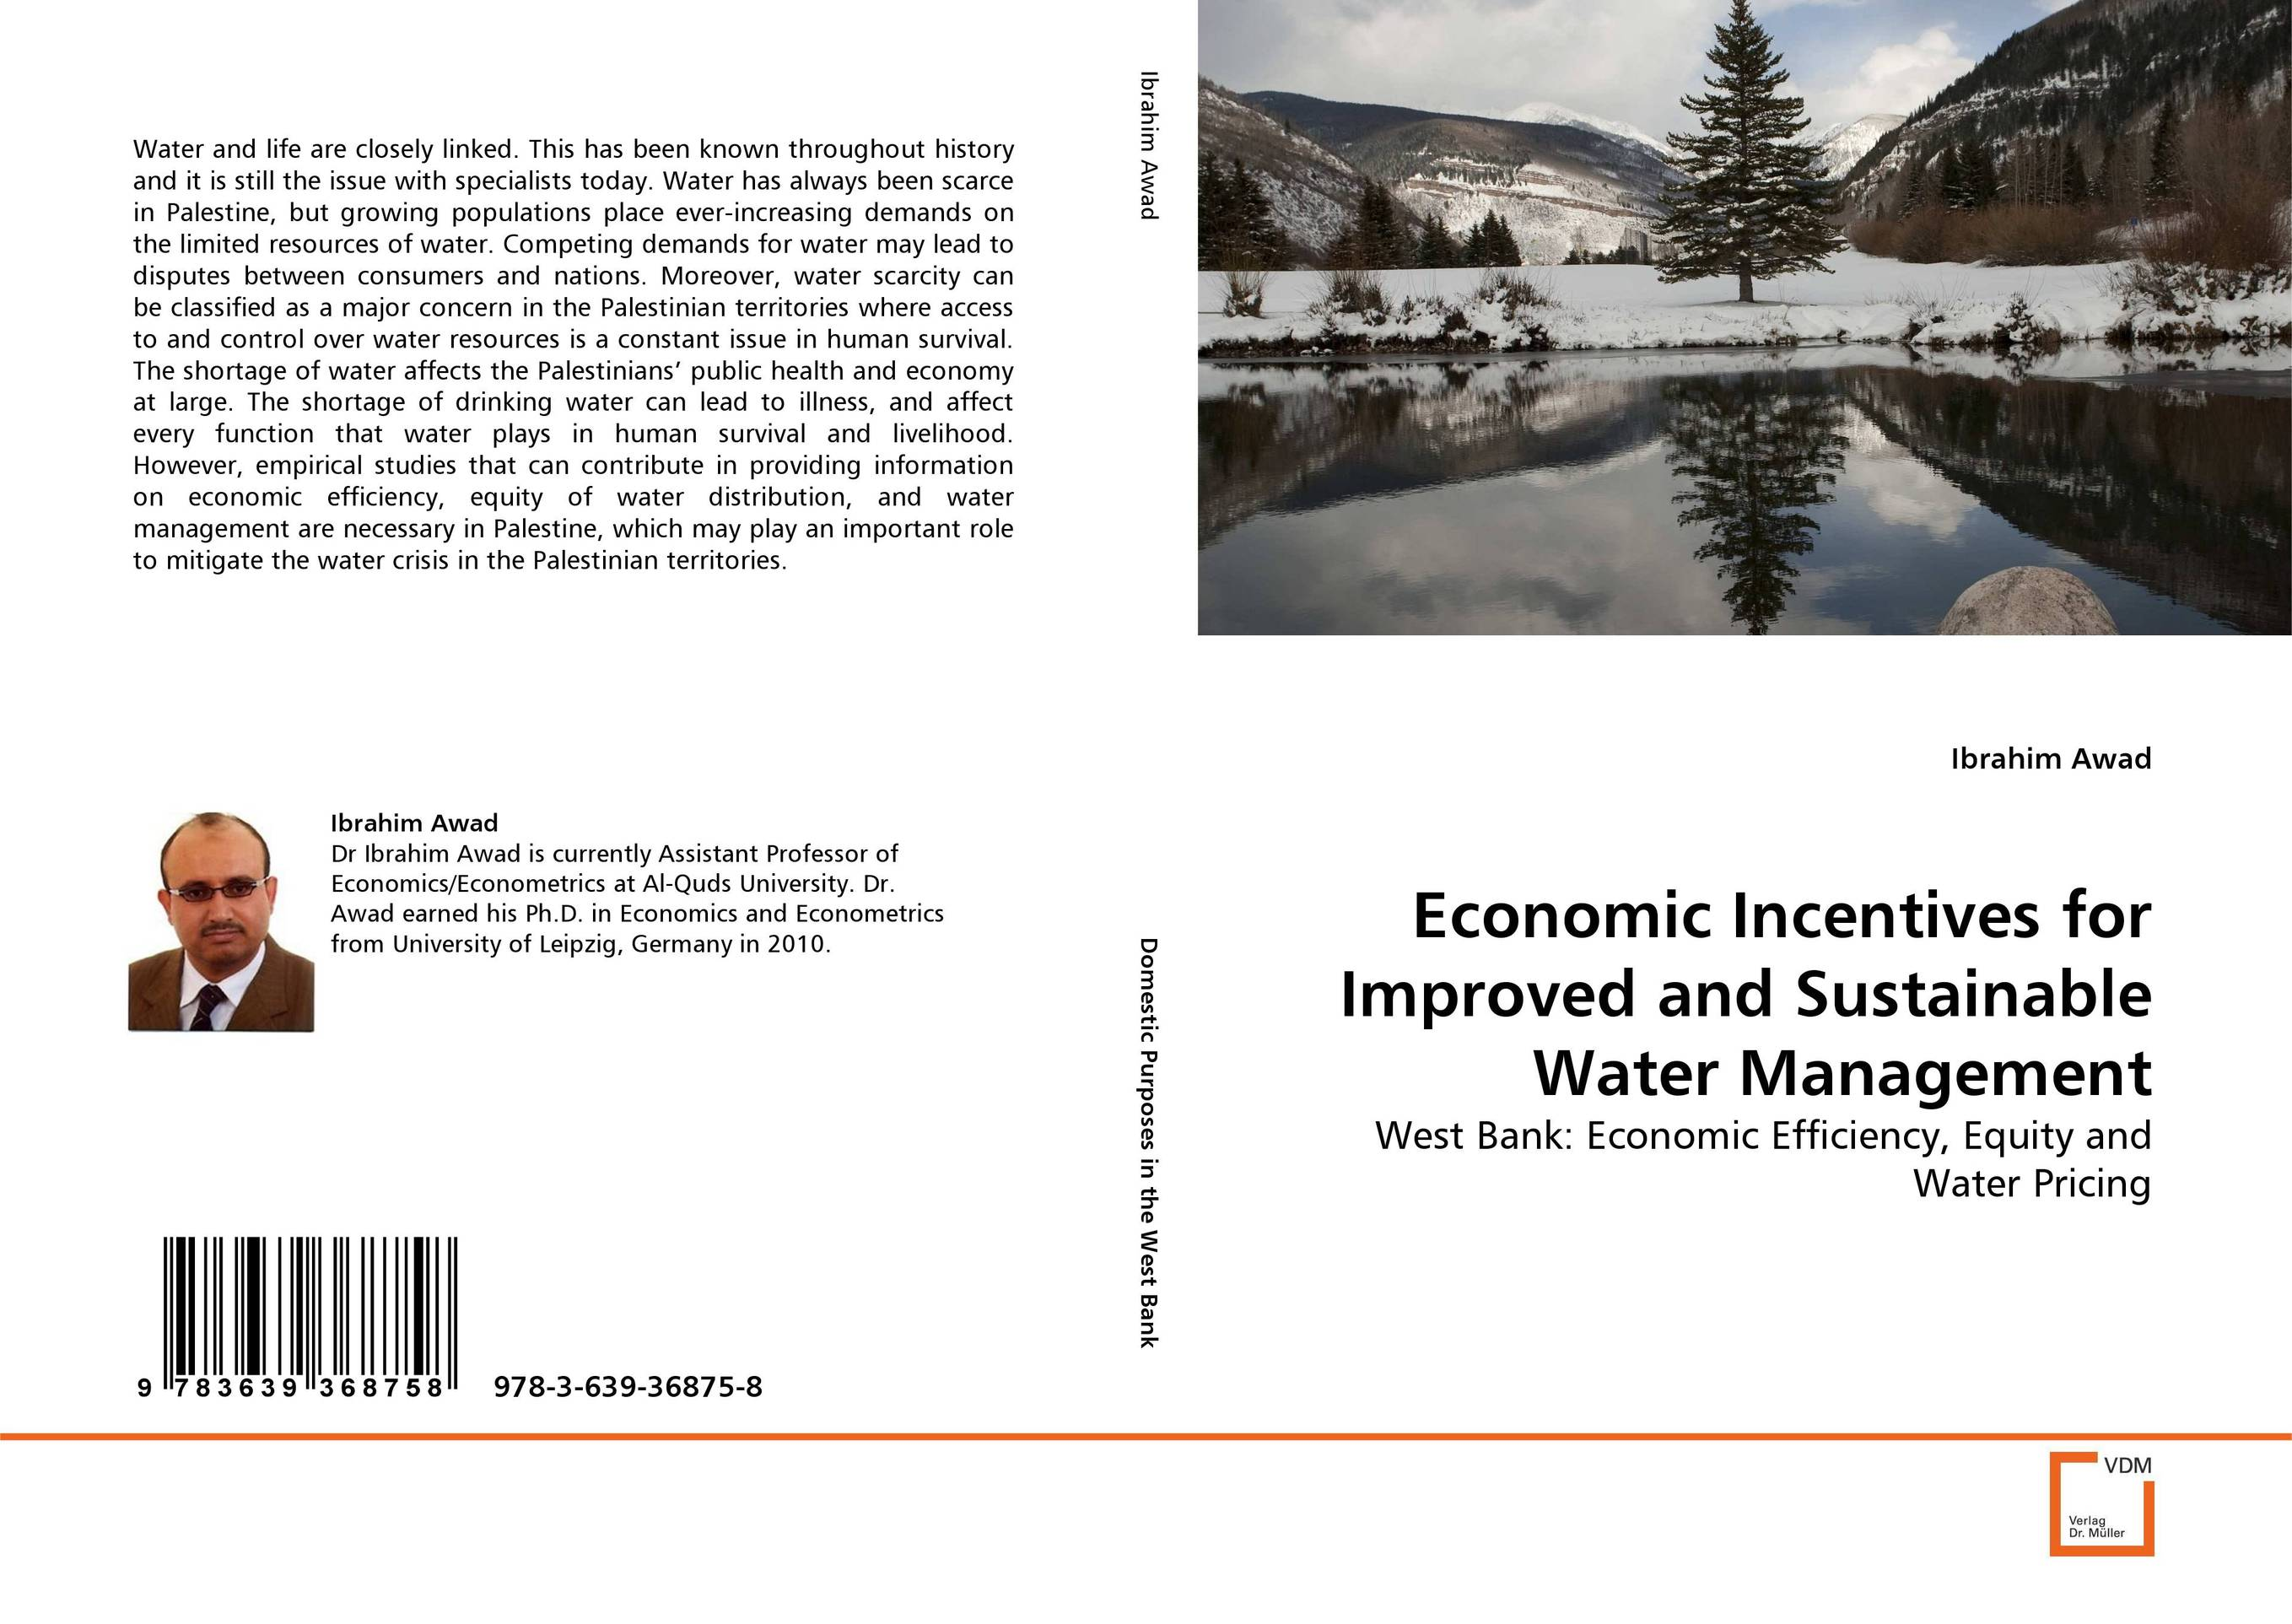 Economic Incentives for Improved and Sustainable Water Management economic methodology